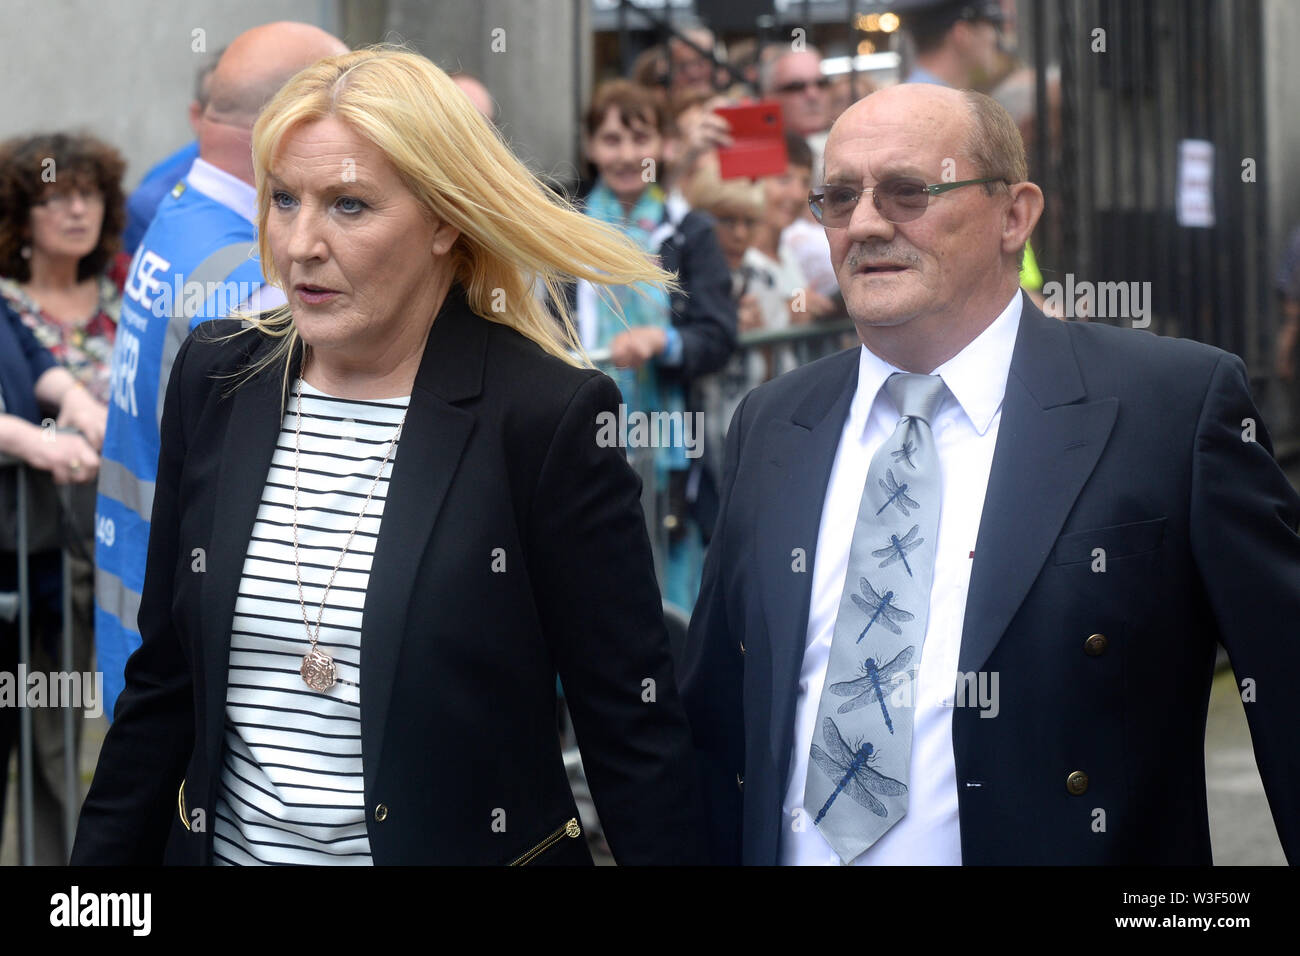 Brendan O'Carroll and his Wife Jennifer arrive for the funeral of Father Ted star Brendan Grace at the Church of St. Nicholas of Myra, Dublin. - Stock Image